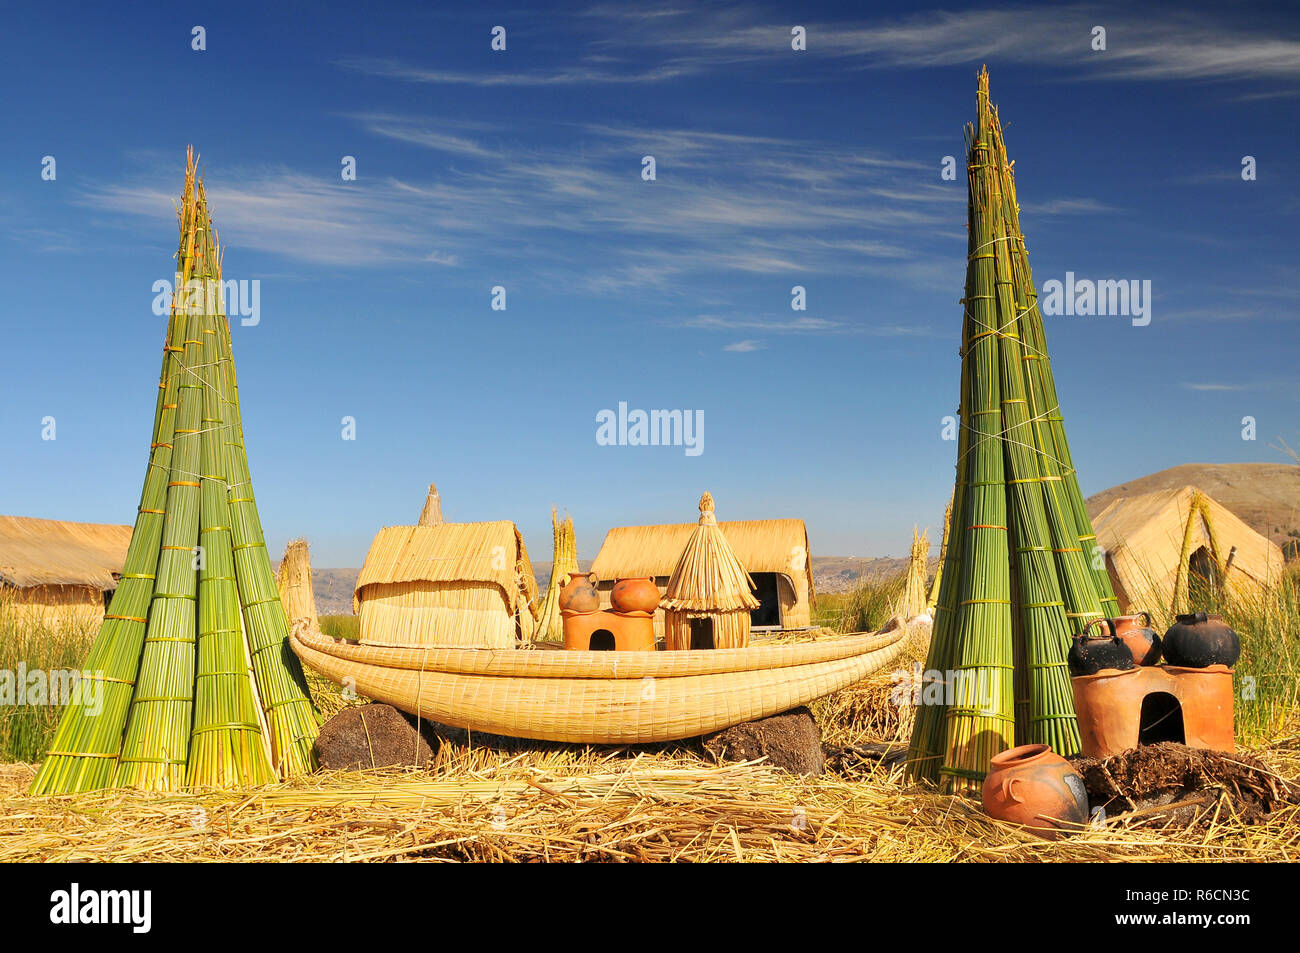 Reed Boat On Island Of Uros Titicaca (Titiqaqa) Is A Lake In The Andes On The Border Of Peru And Bolivia - Stock Image